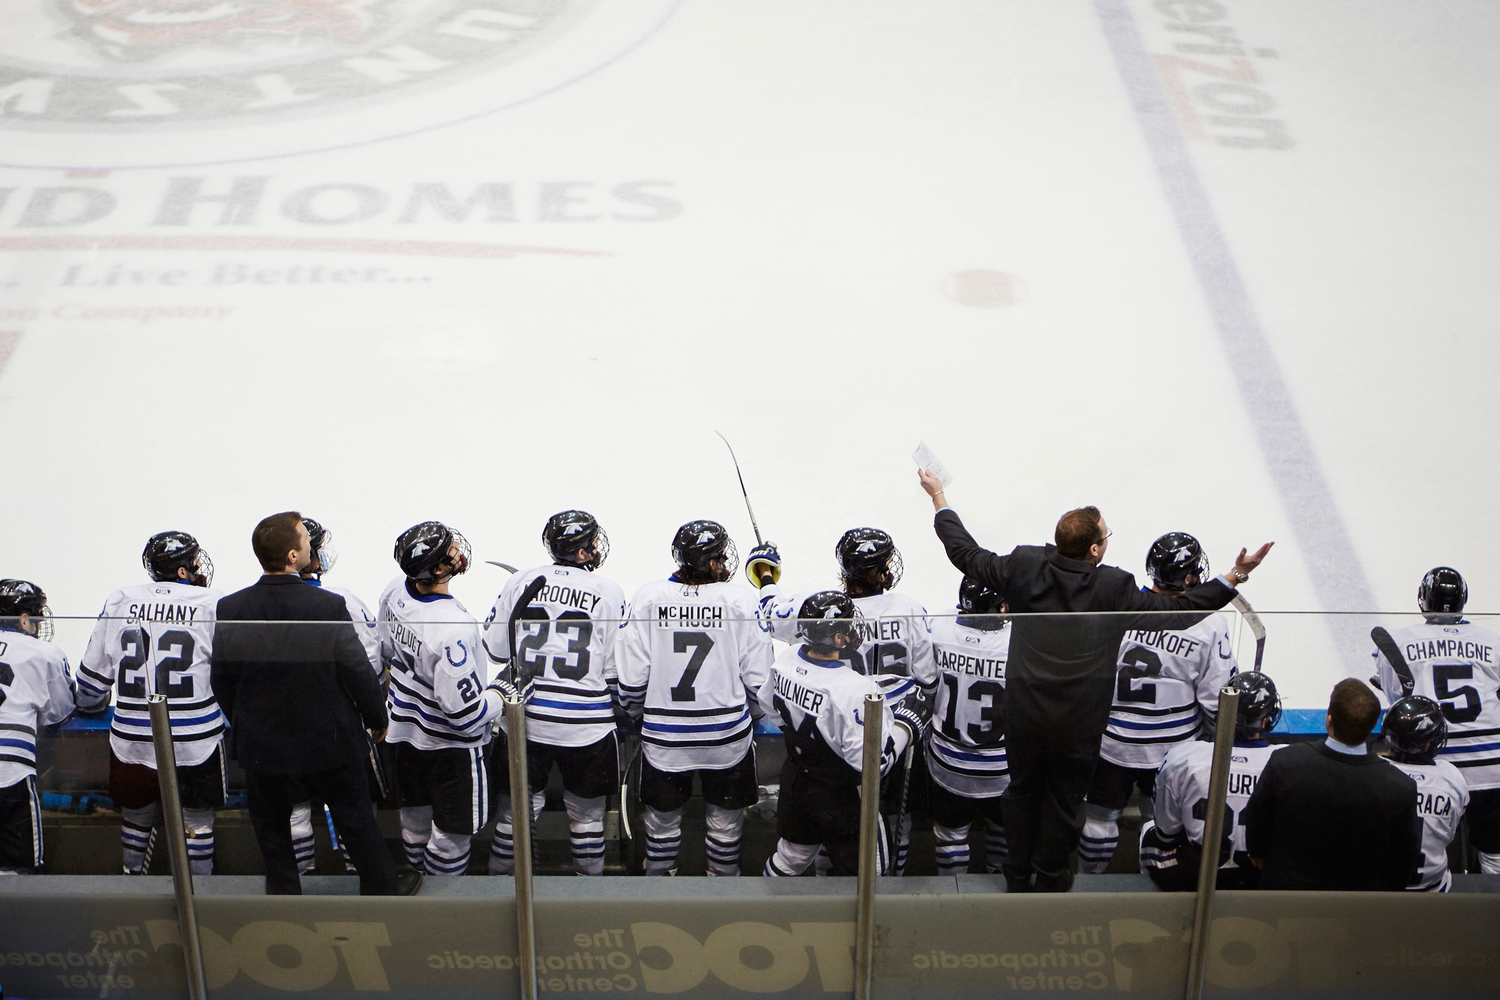 WCHA: Huntsville, AL - Hockey Capital Of The South